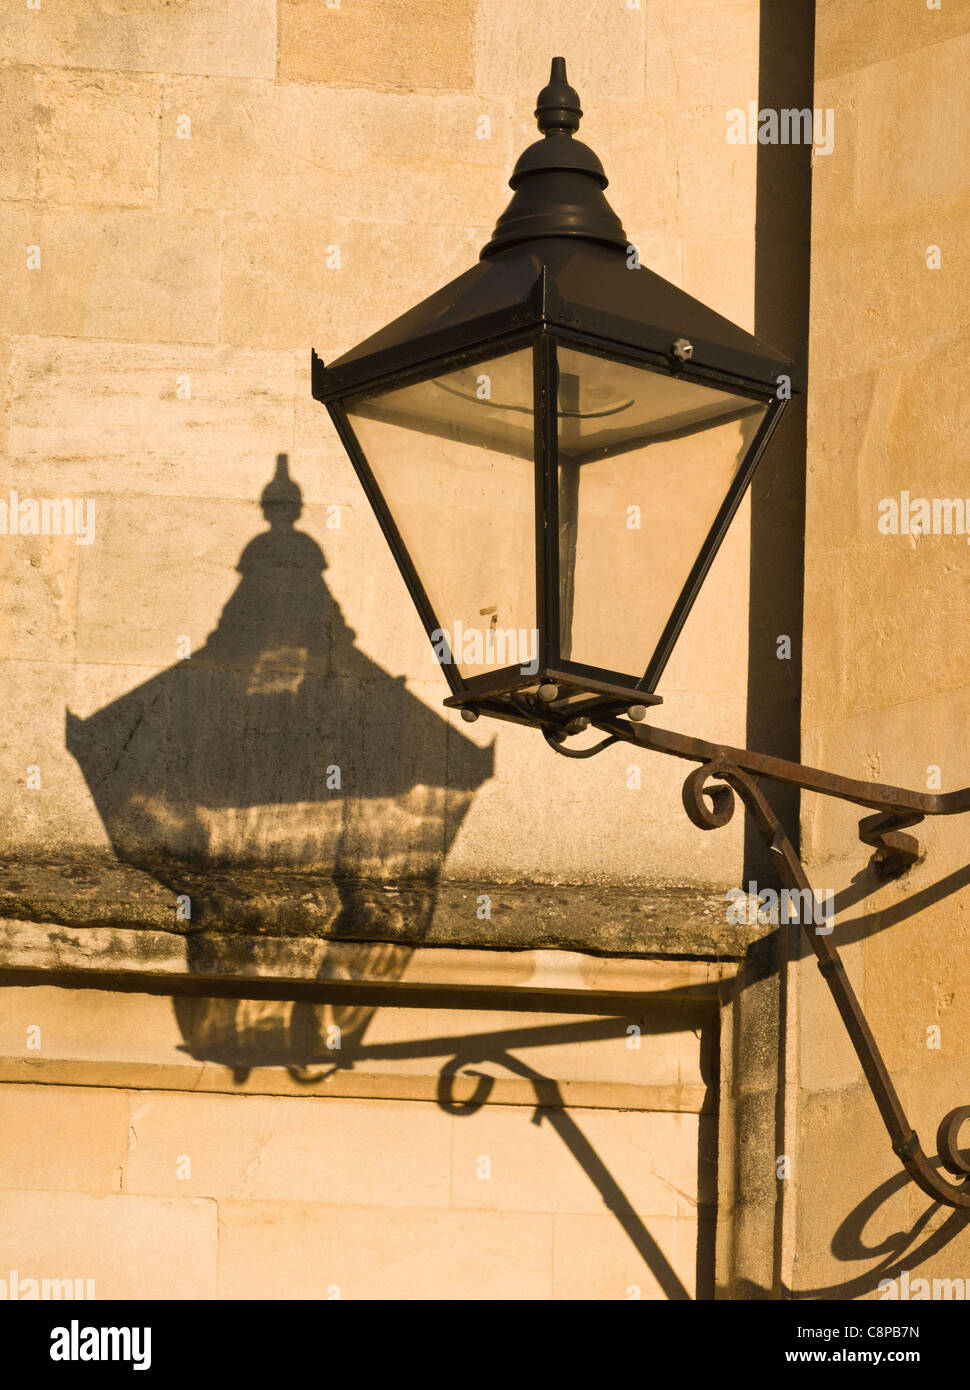 Old street lamp Radcliffe Square Oxford UK - Stock Image